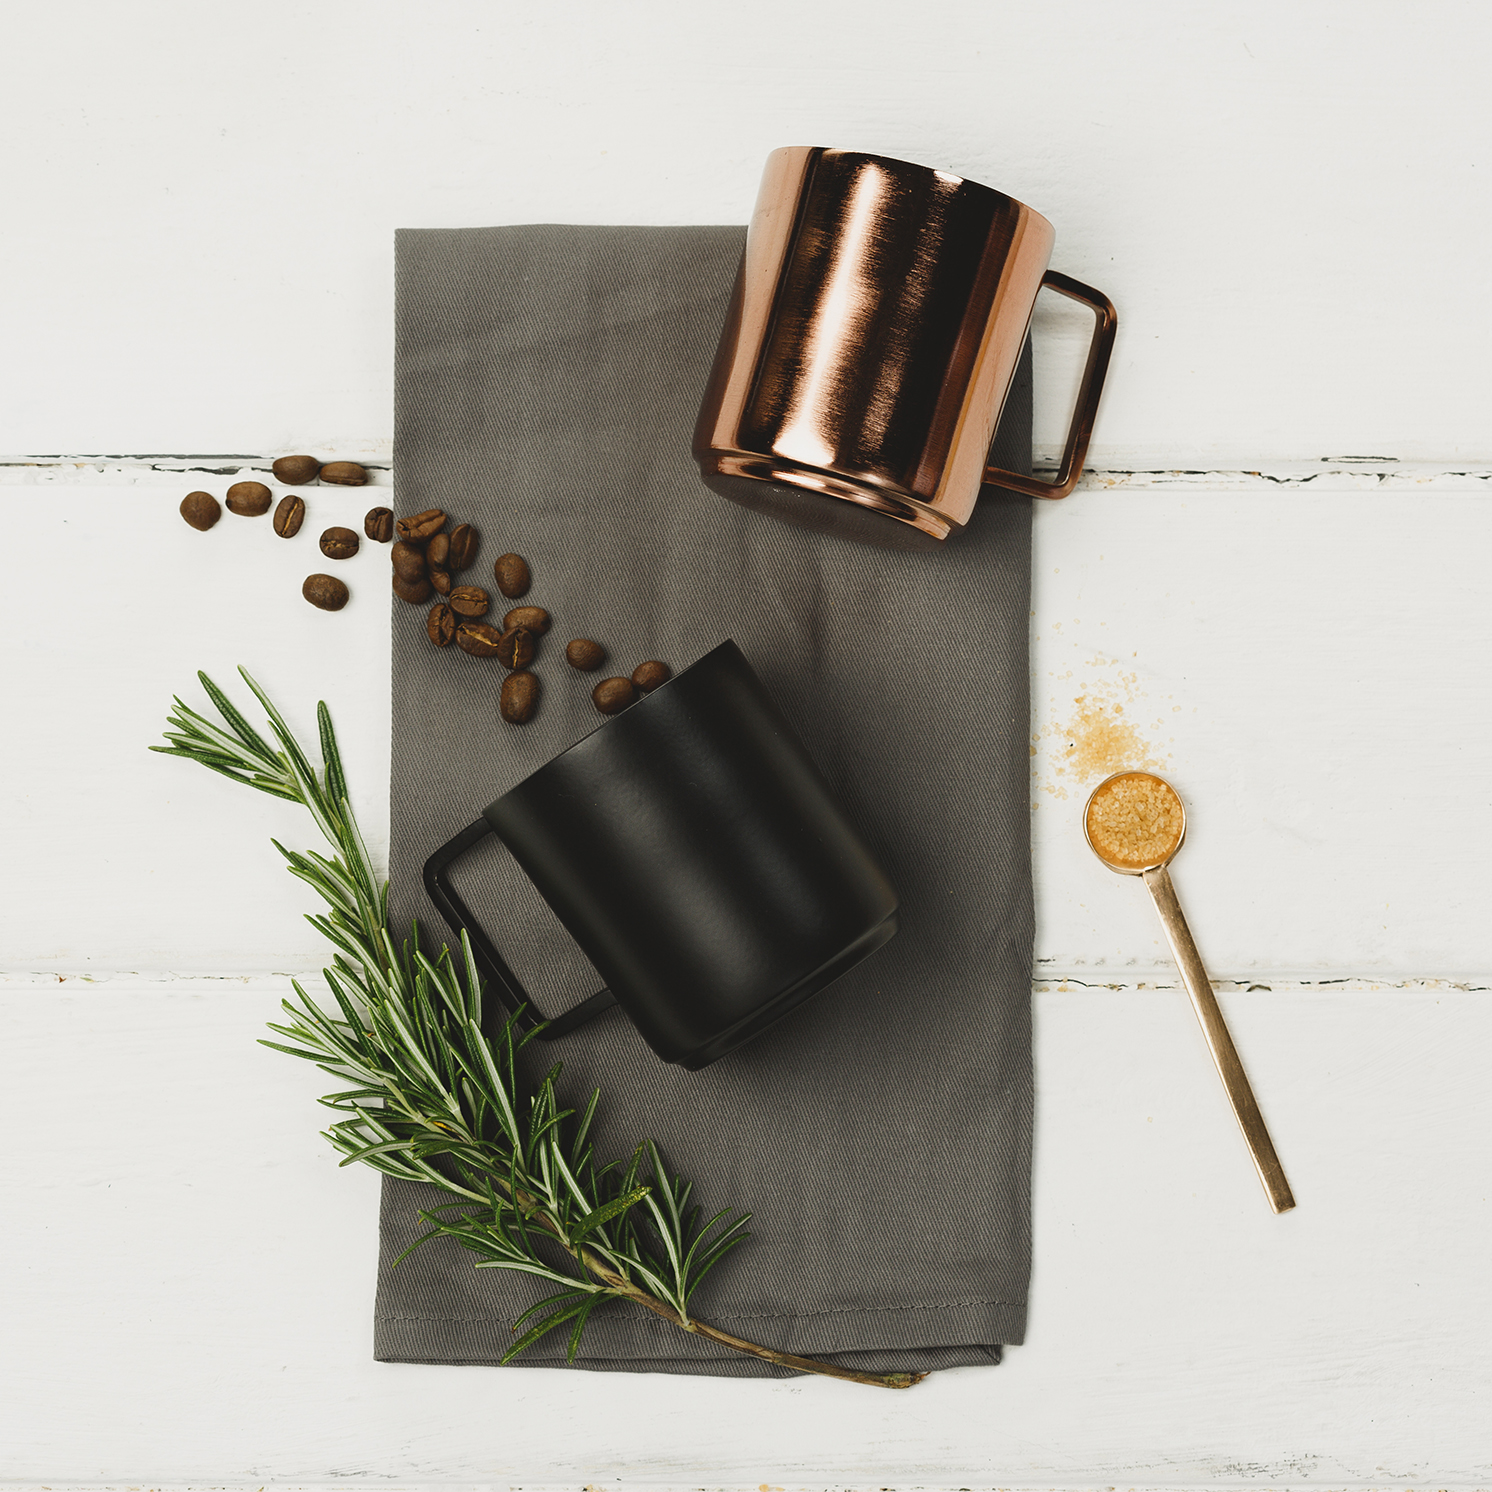 The Just Slate Company – Set of 2 Stainless Steel Coffee Cups/Mugs in Gift Box